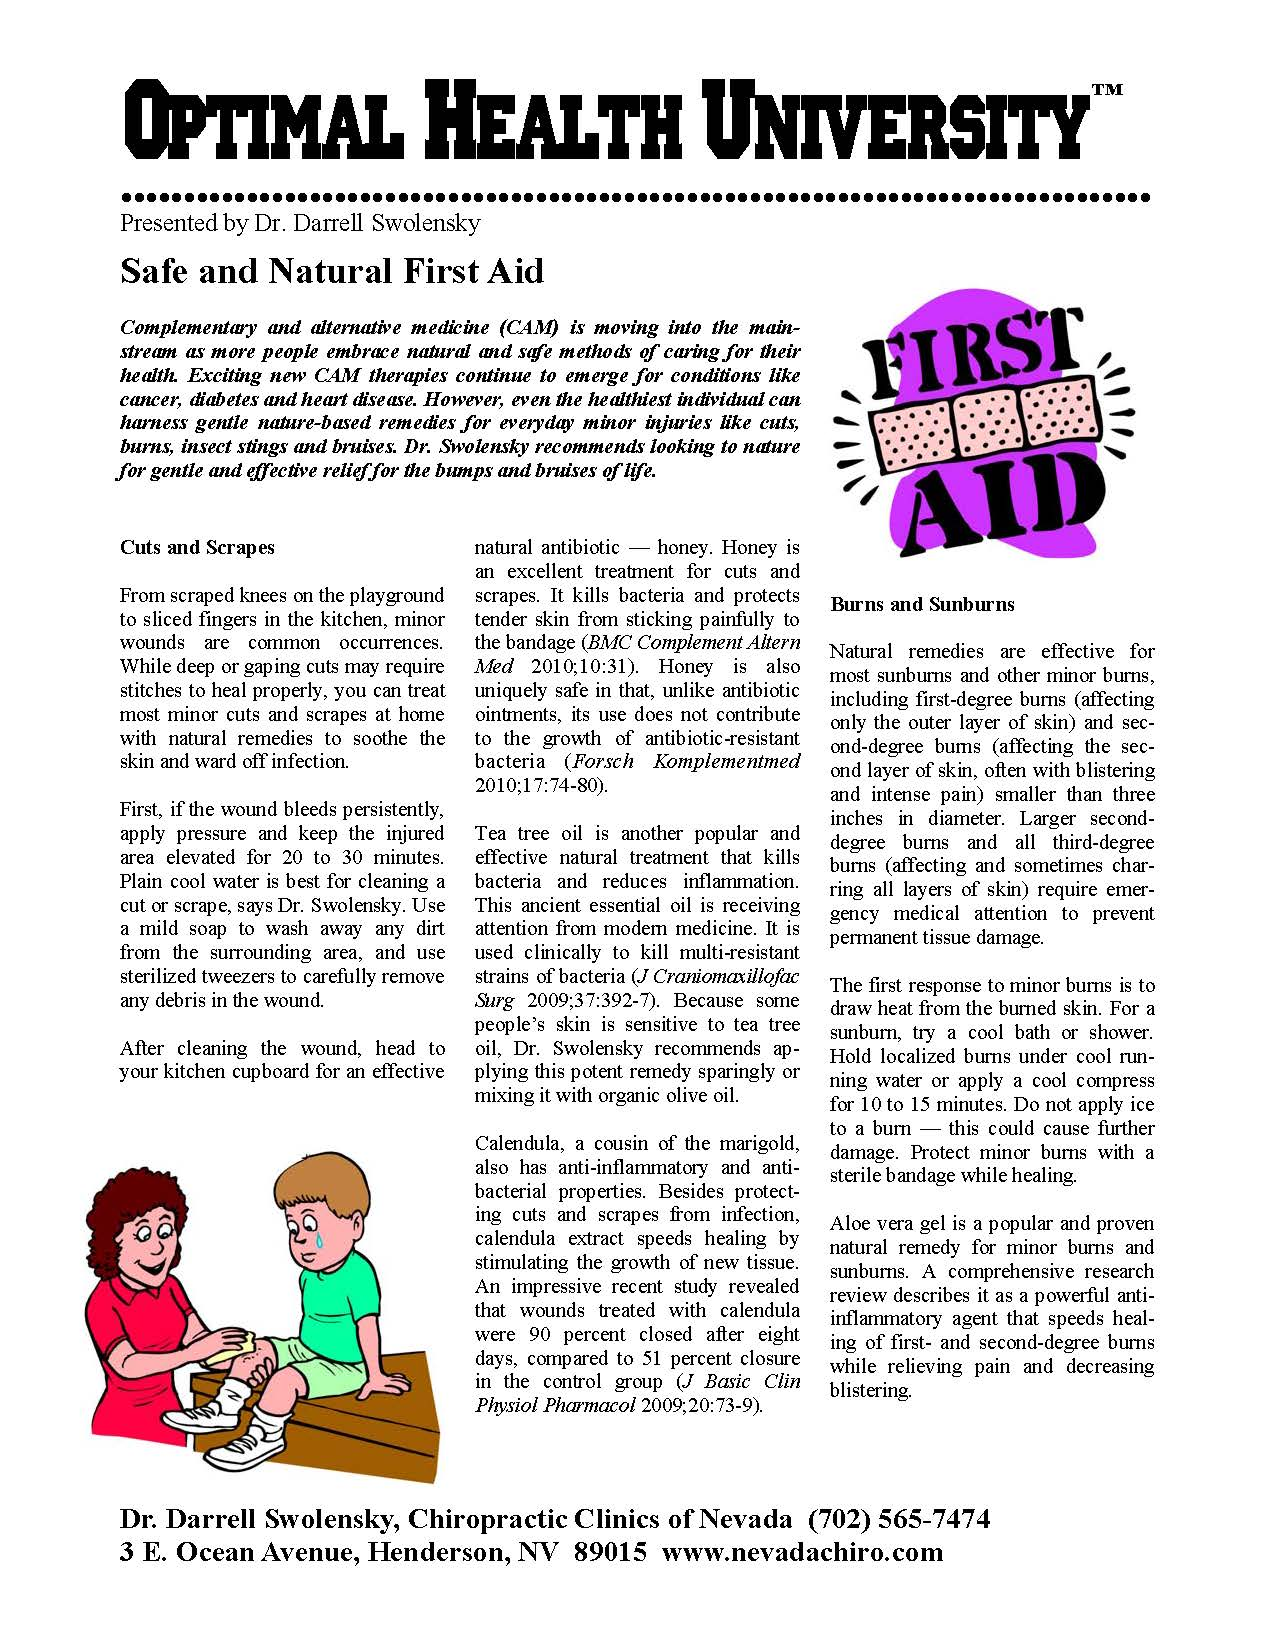 Safe and Natural First Aid | Henderson NV Chiropractor | Dr